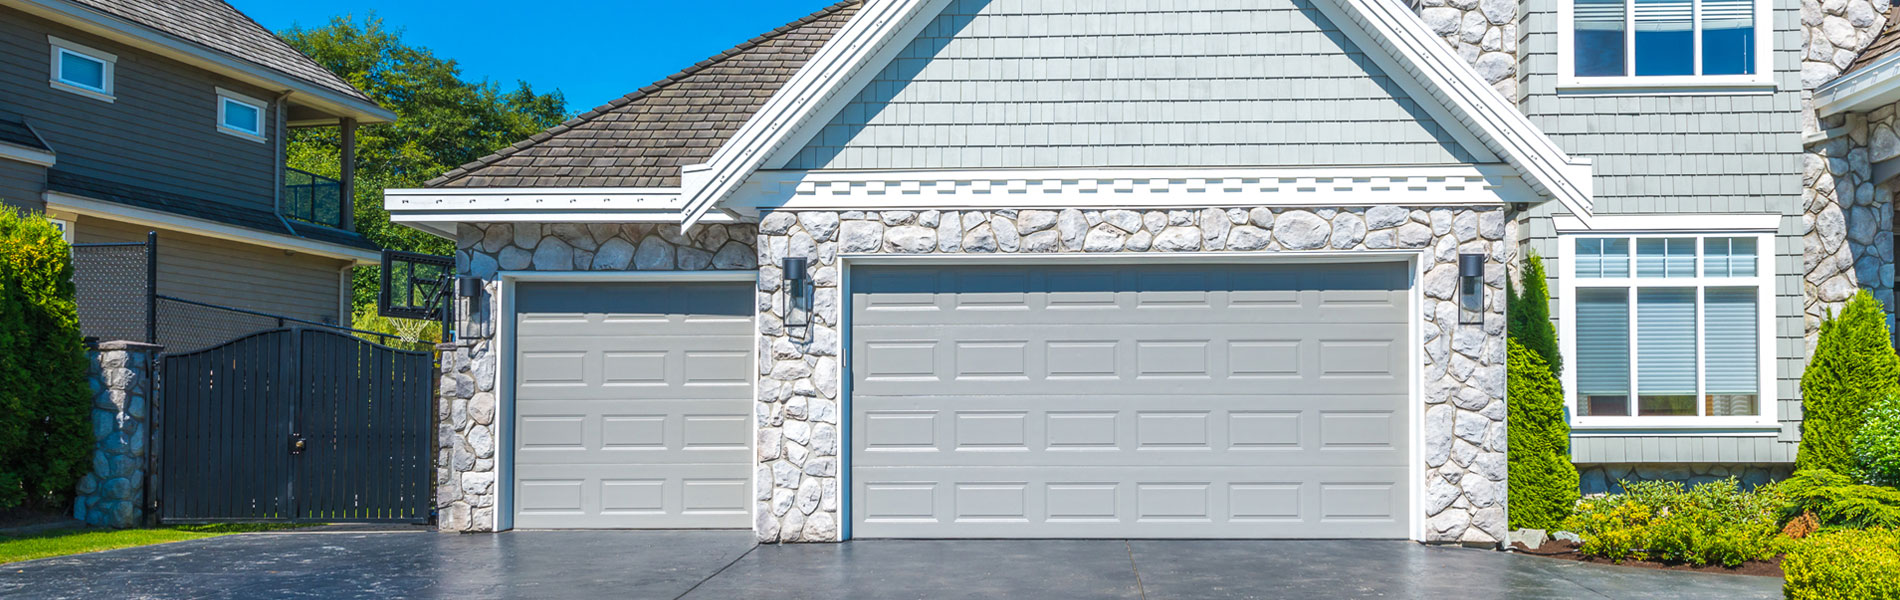 Eagle Garage Door St Petersburg, FL 727-344-1103